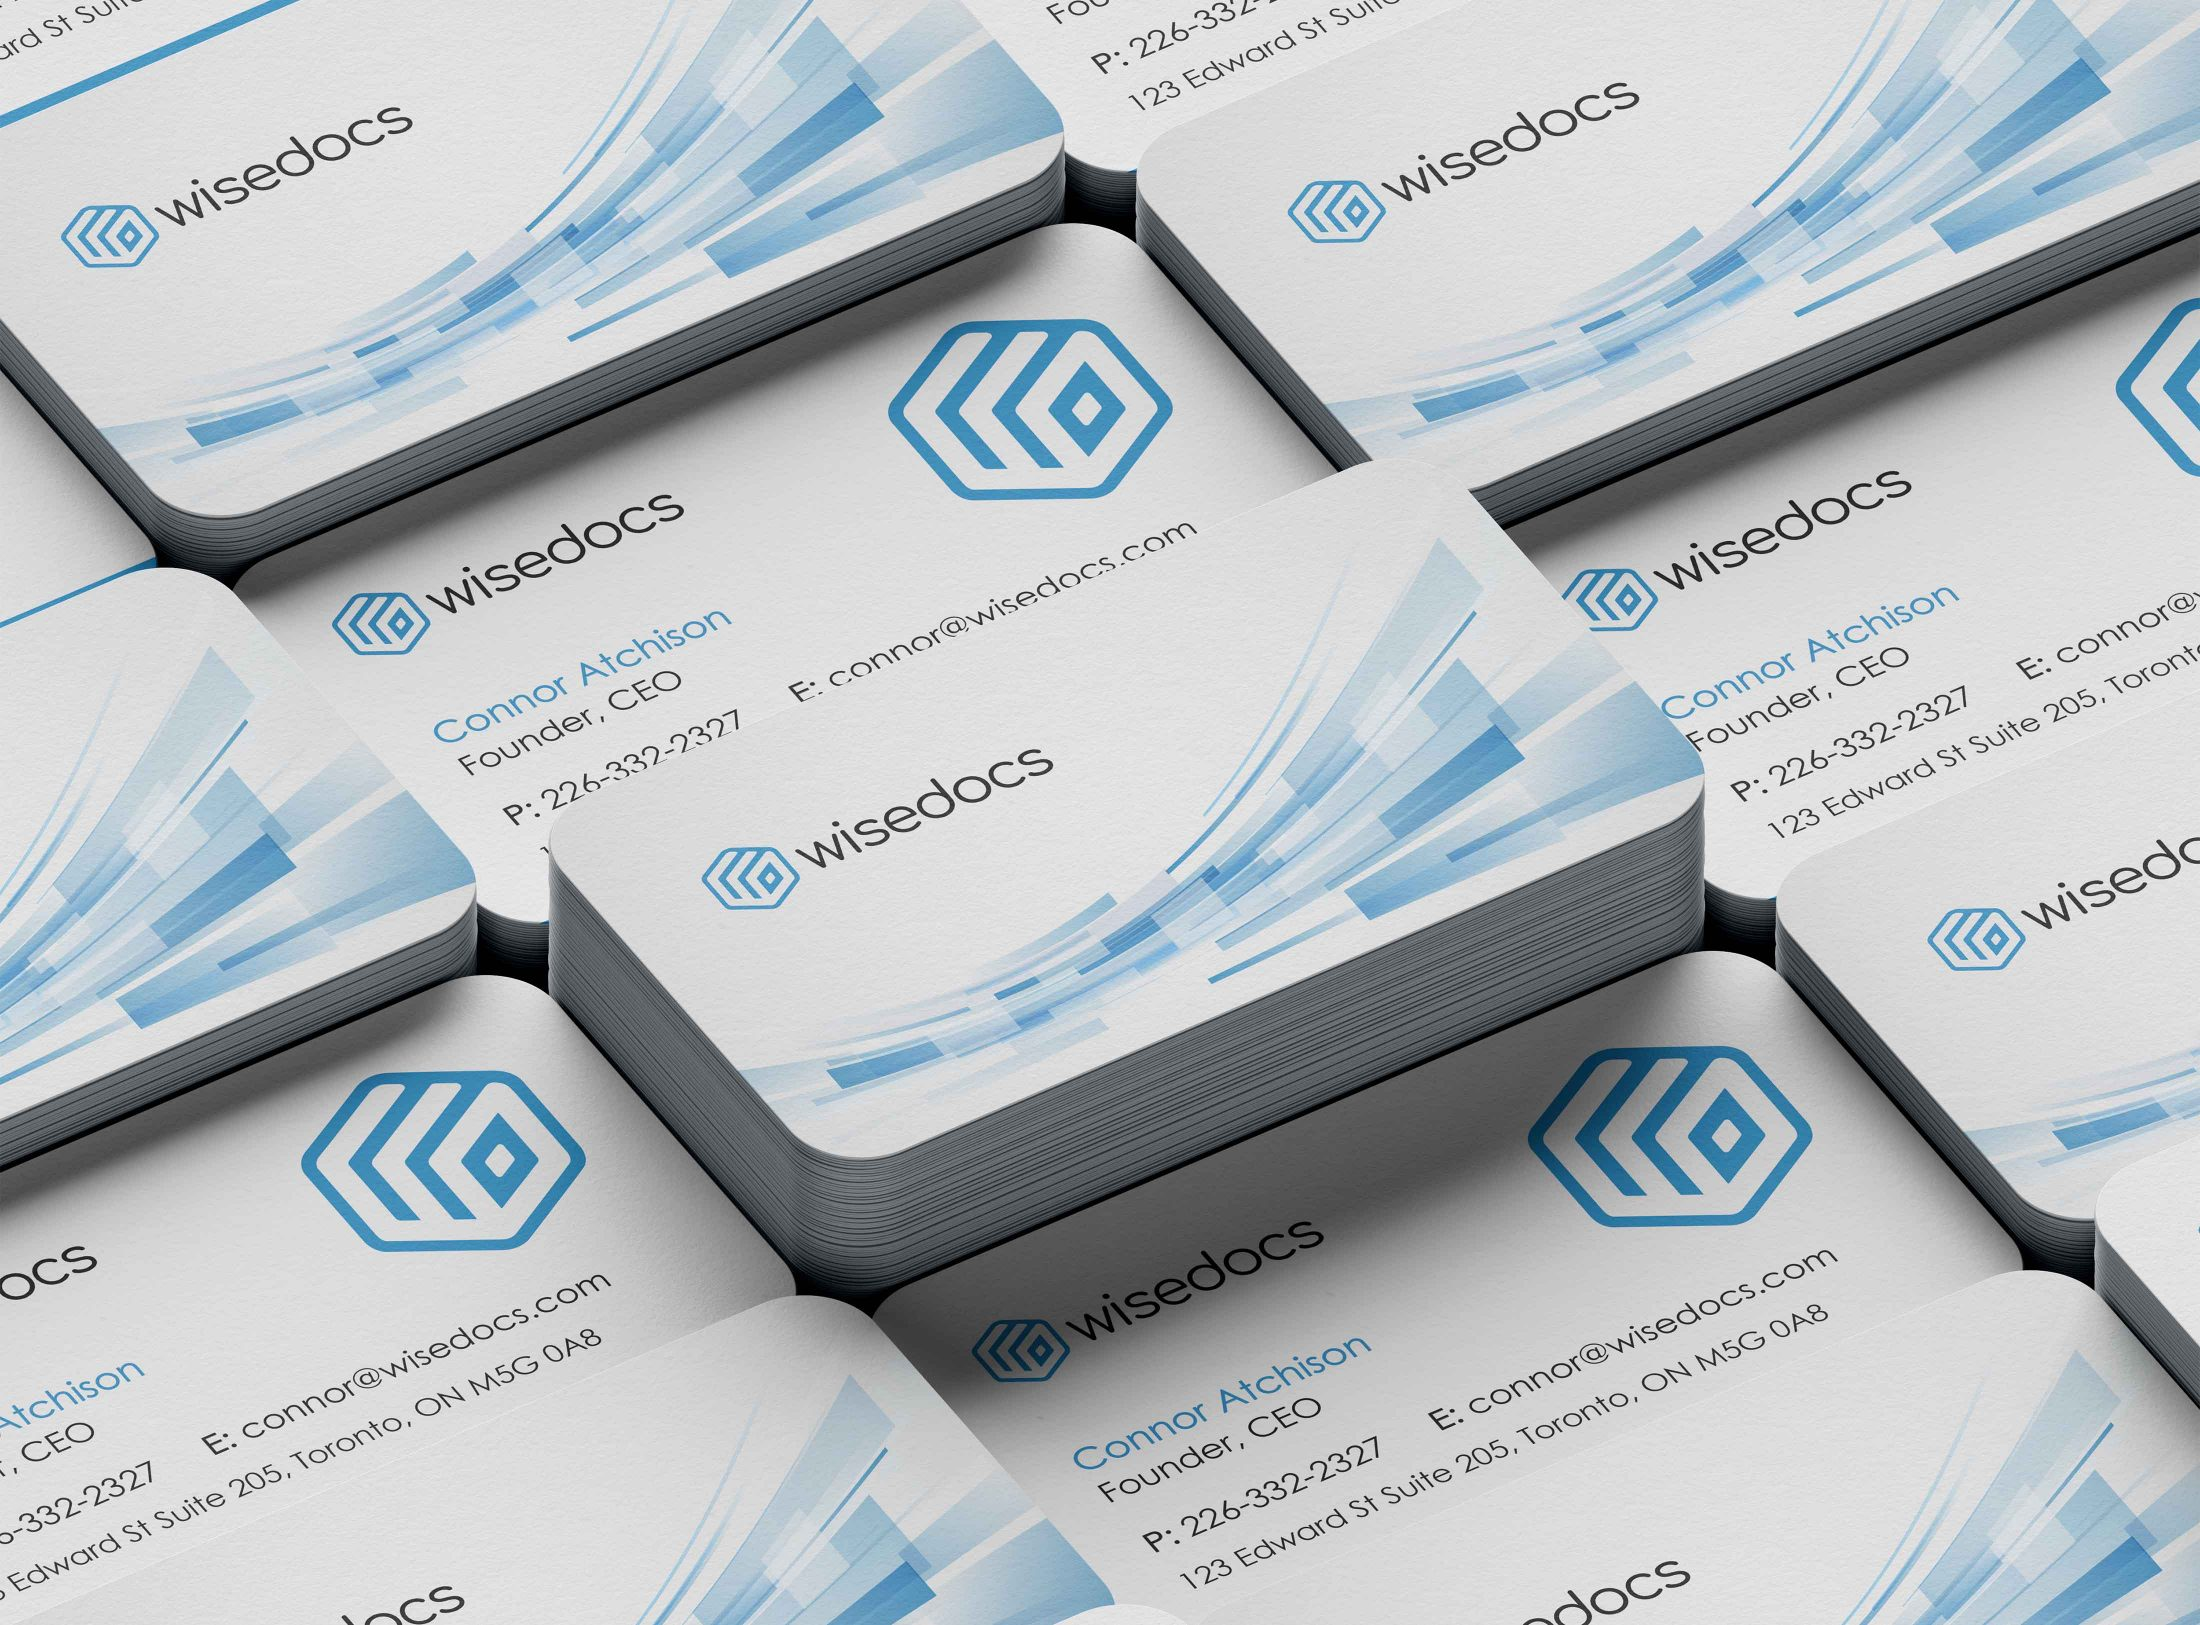 Wisedocs business cards